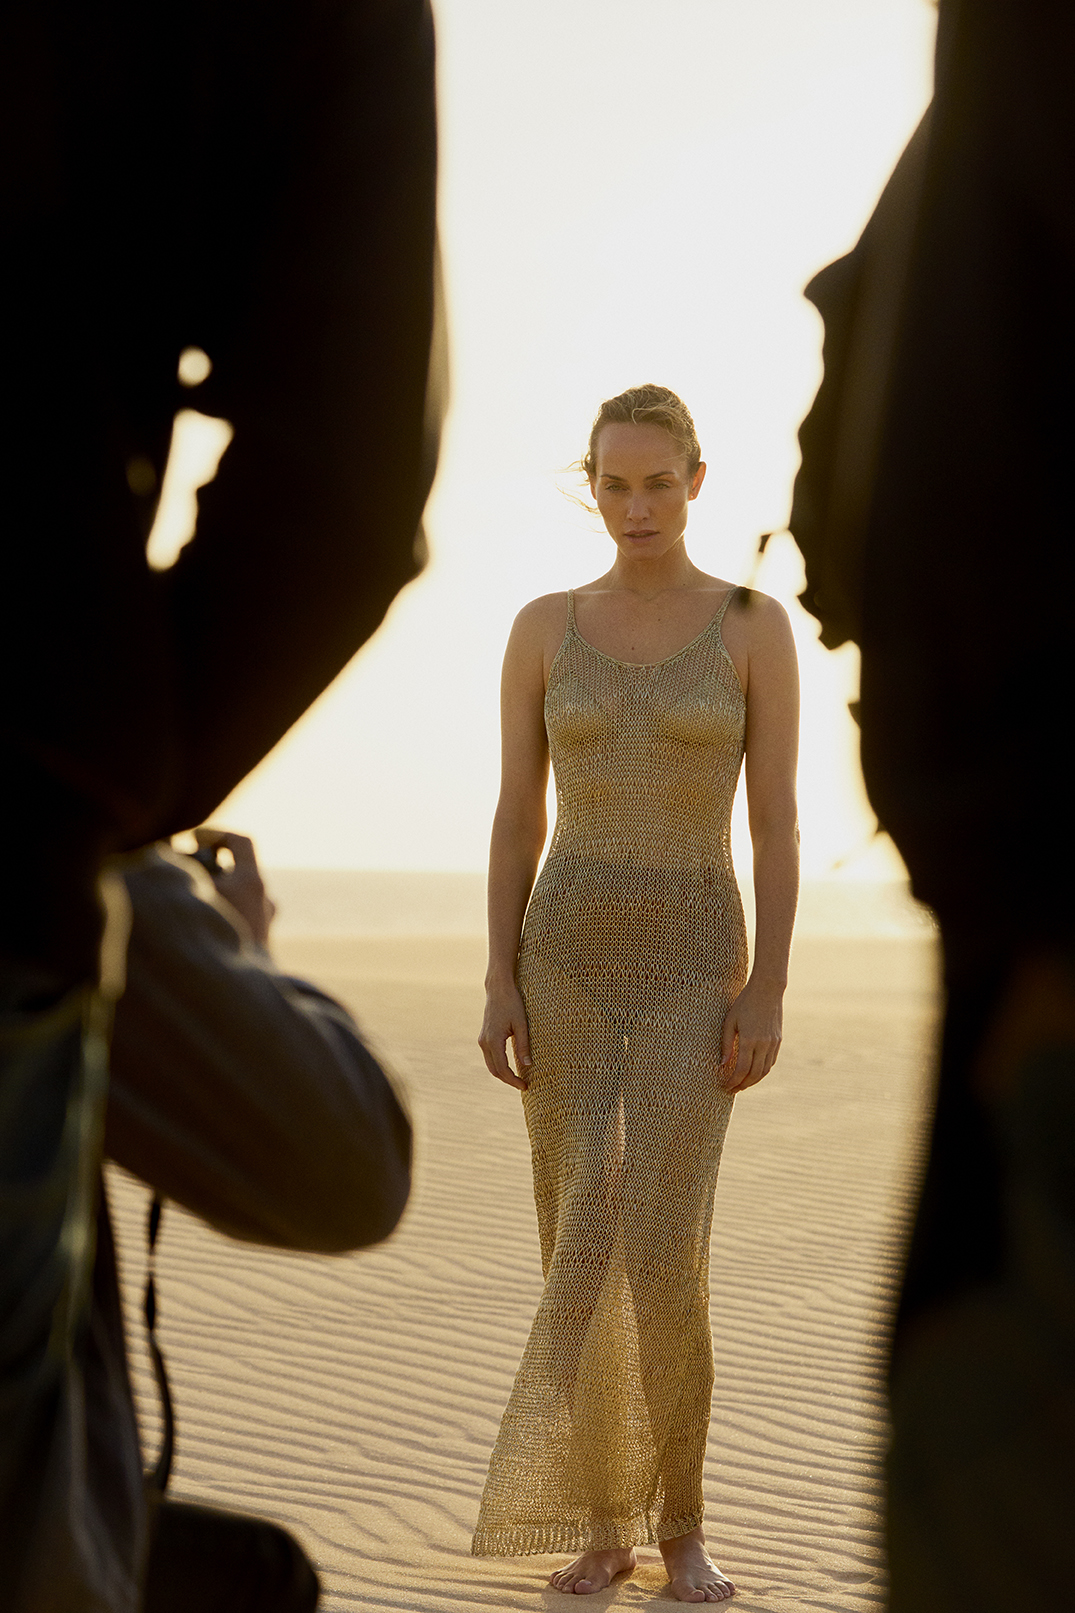 amber valletta wants to grow old gracefully - i-D